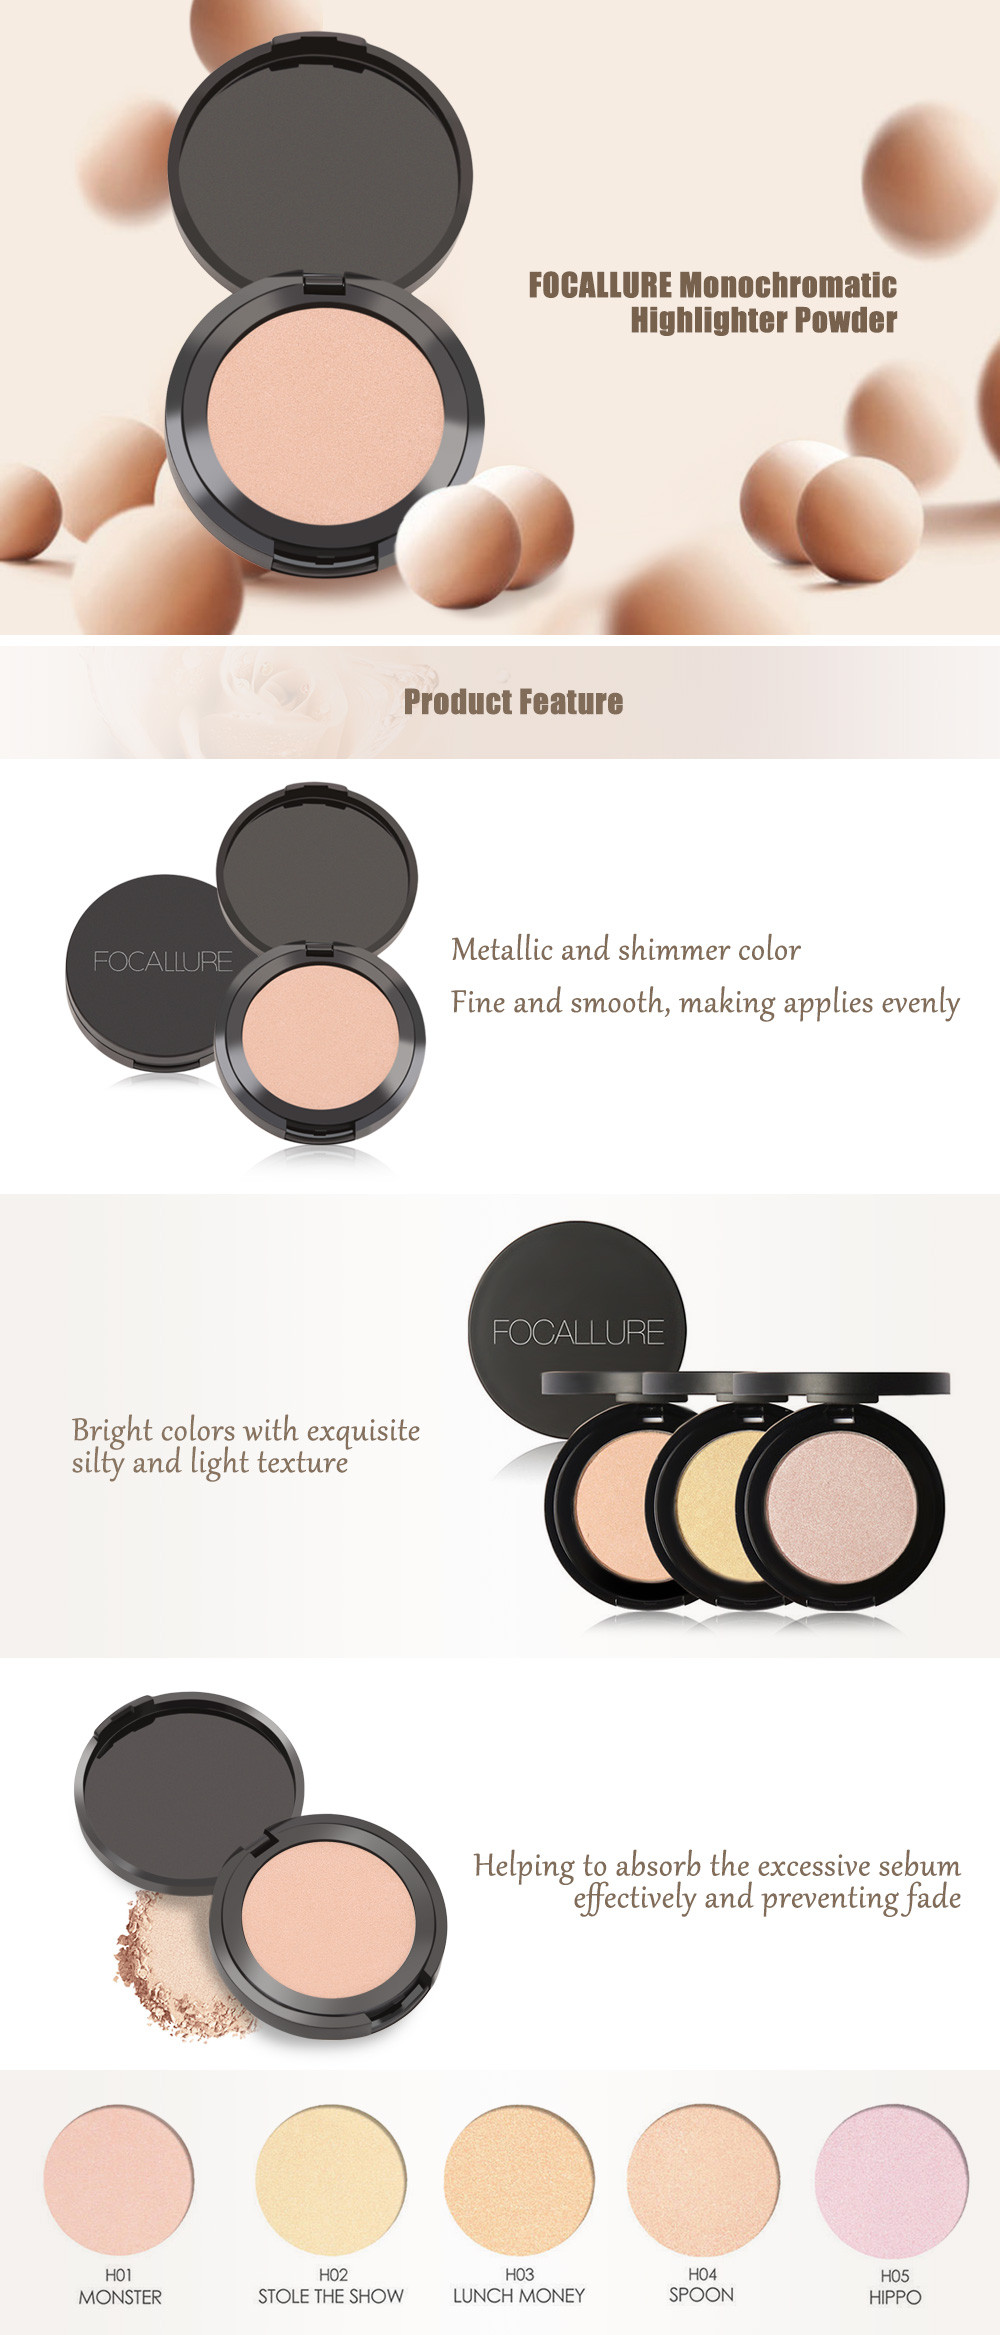 FOCALLURE Monochromatic Makeup Complexion Highlight Powder